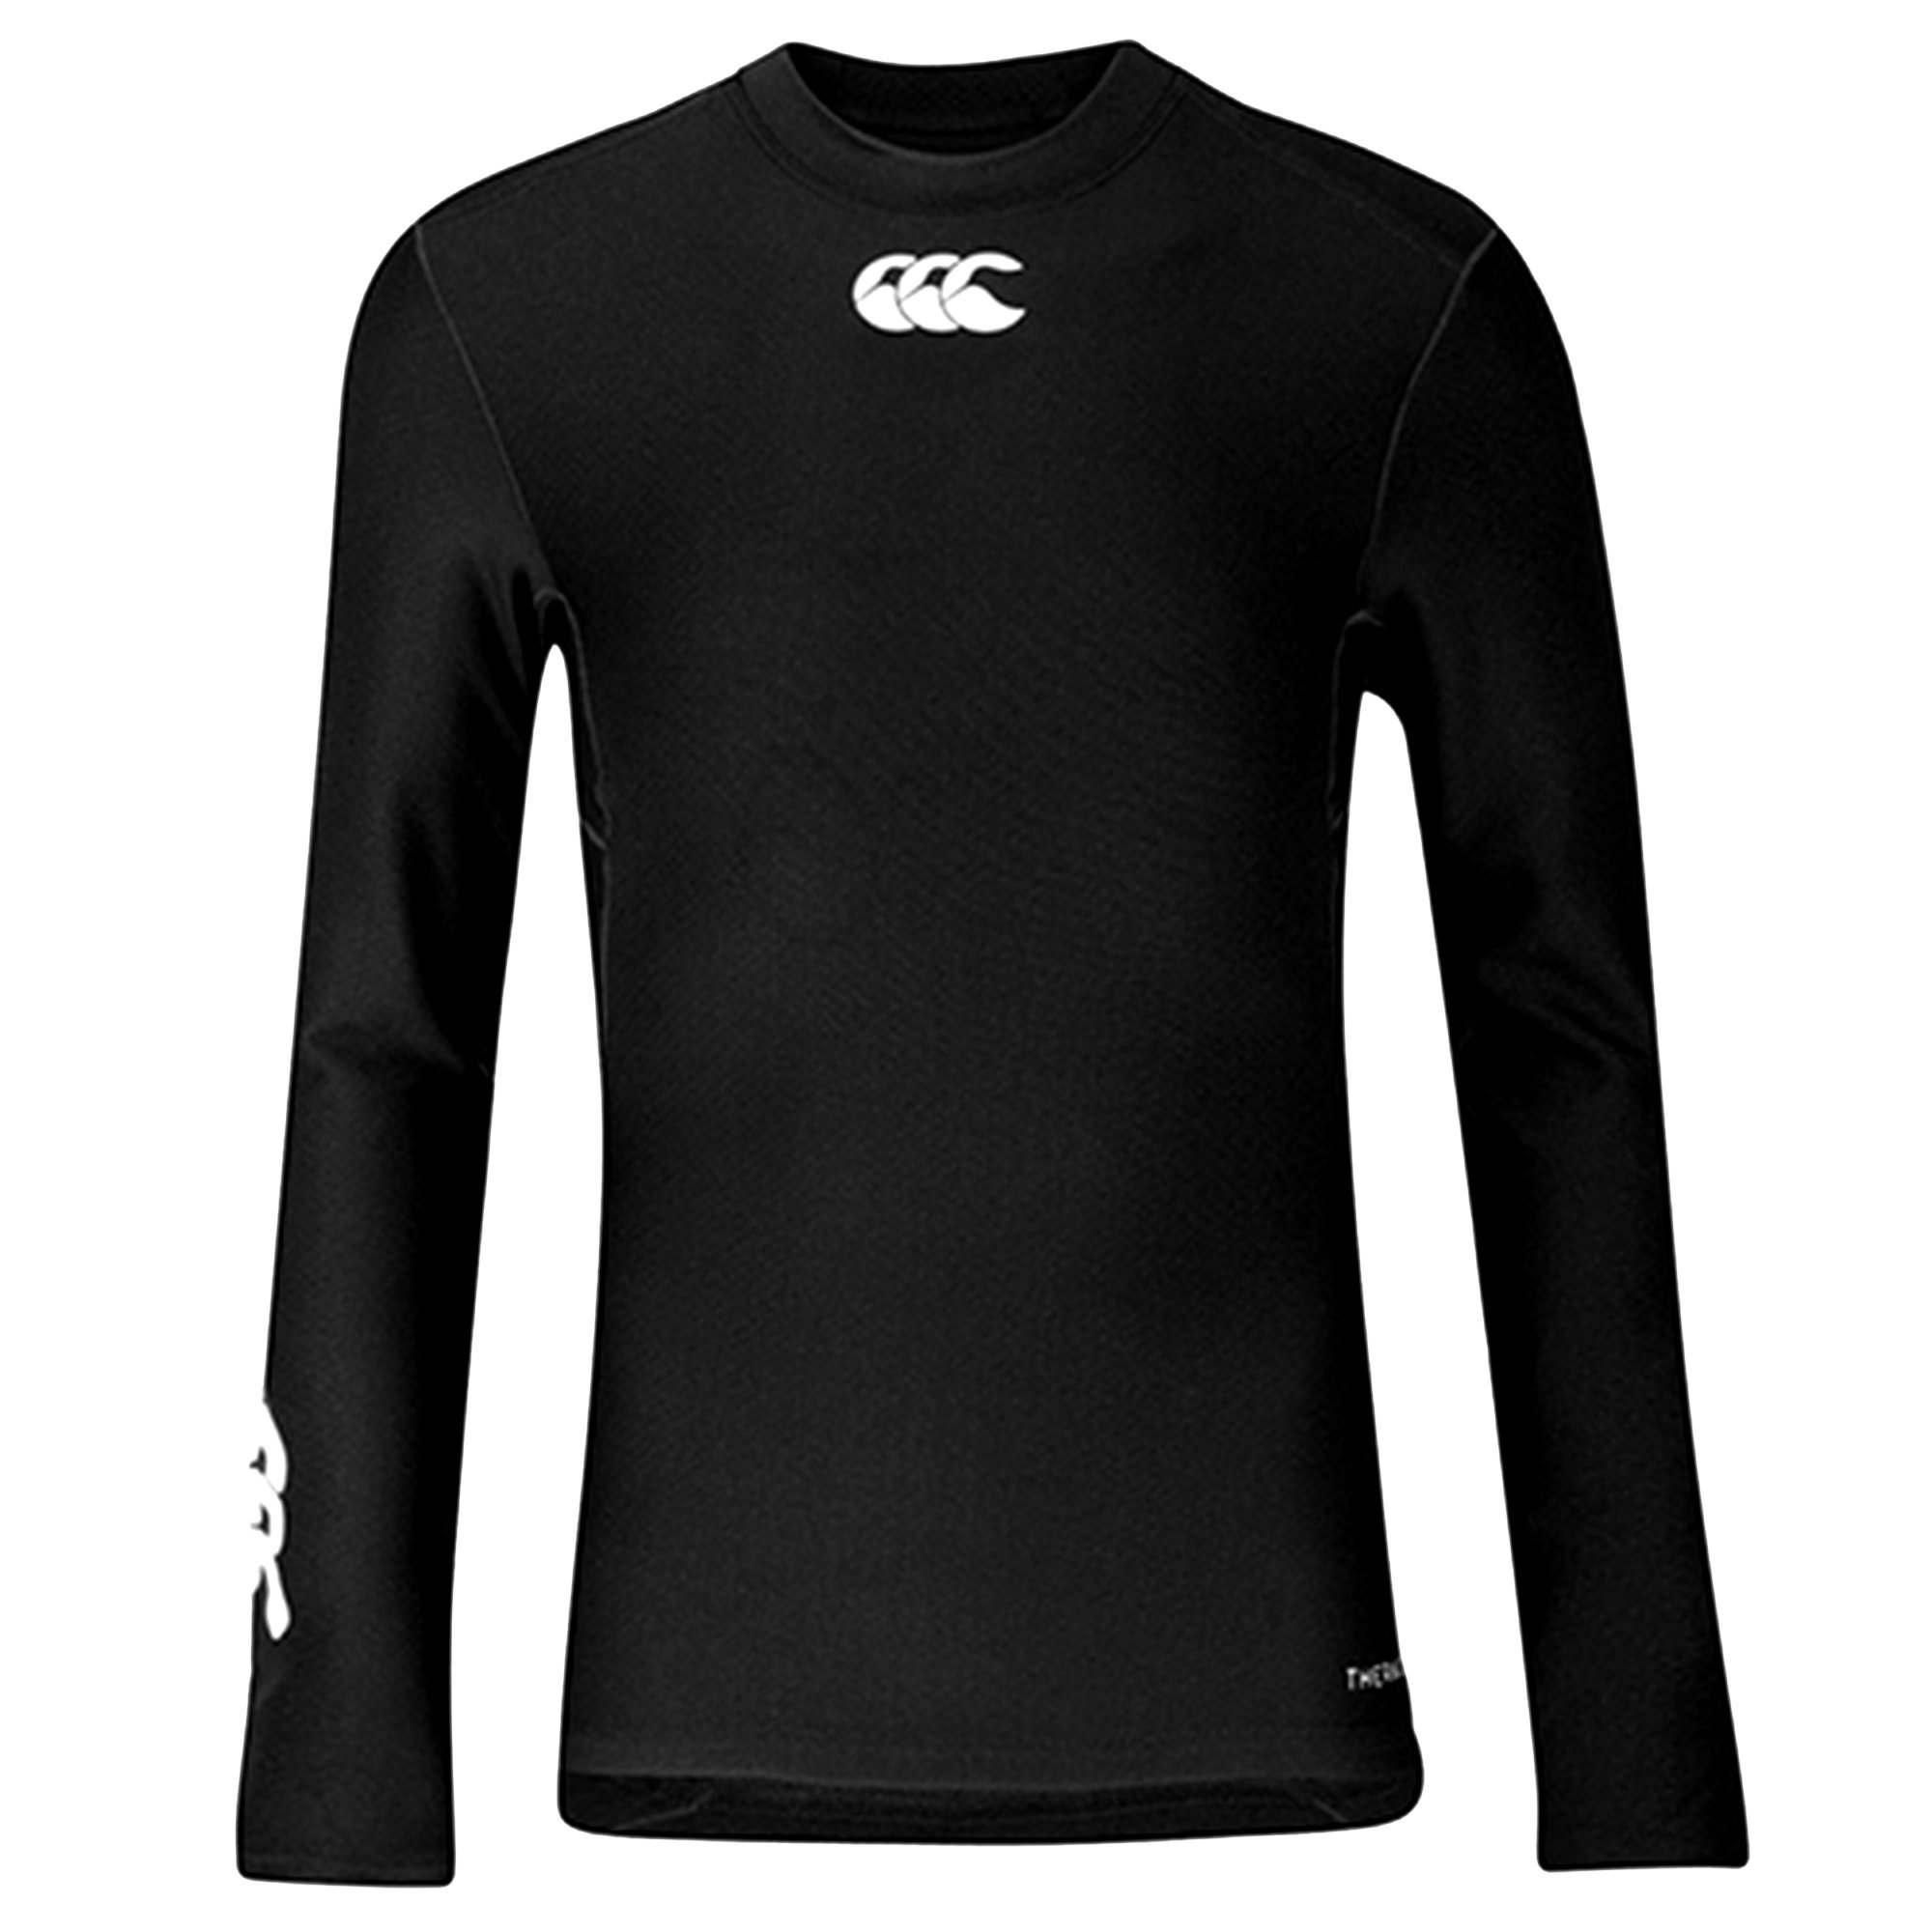 Canterbury Childrens/Kids Long Sleeve Thermoreg Base Layer Top (S) (Black) by Canterbury